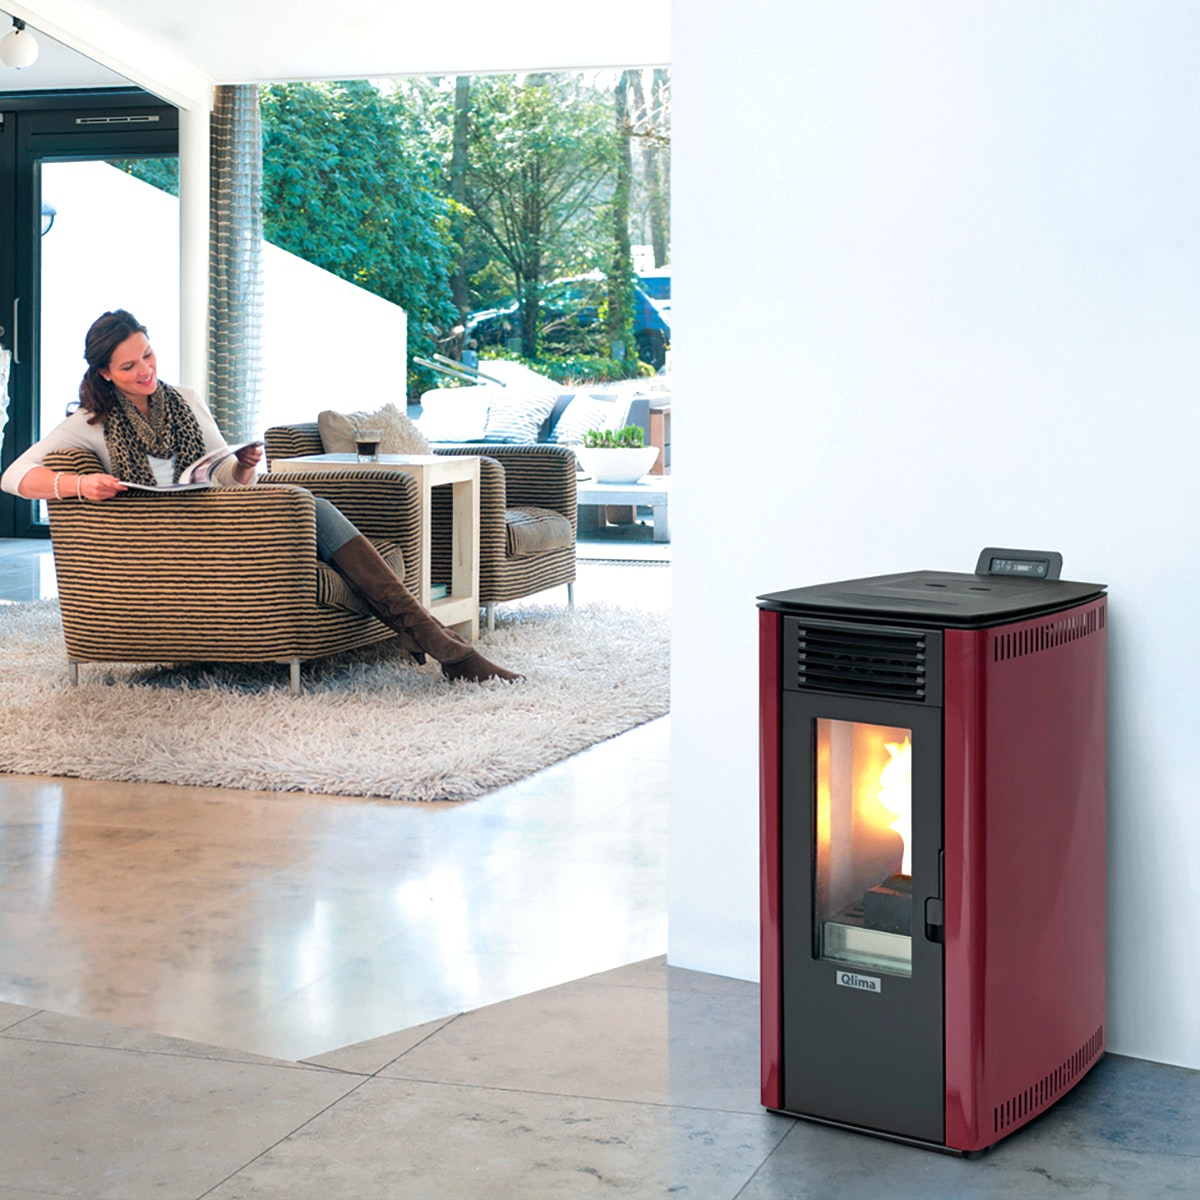 ▷ Le migliori stufe a pellet 8 kw. Classifica Di Agosto 2018